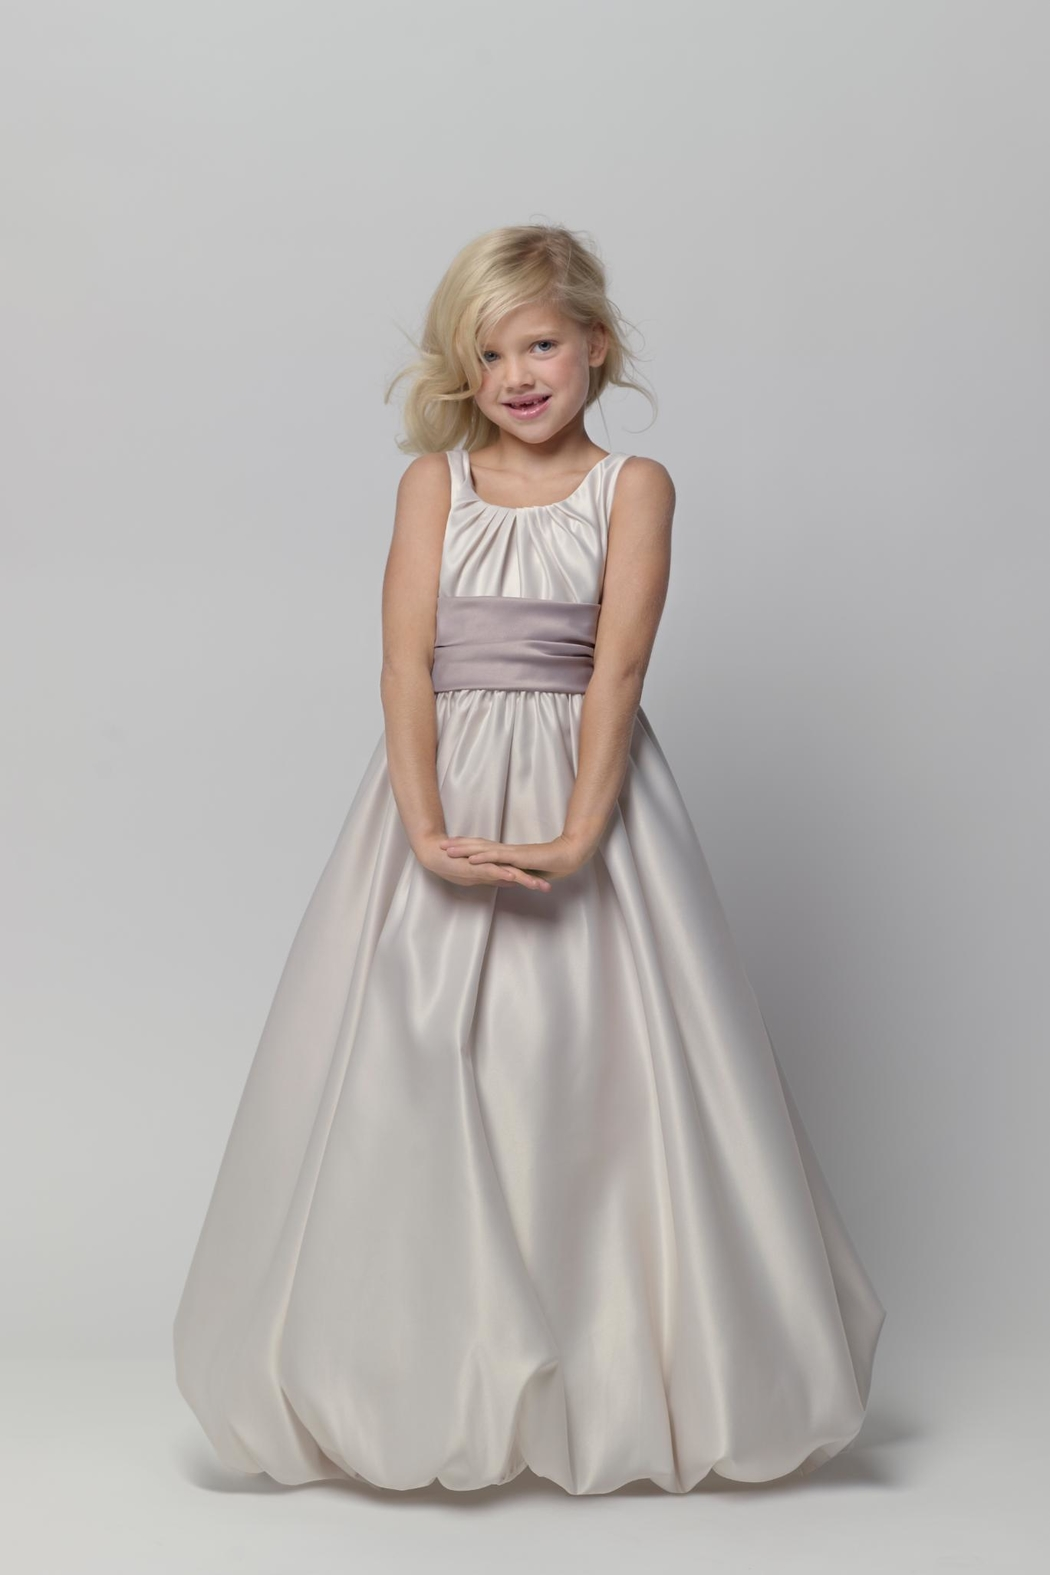 b72cf1177c6 Watters Flower Girl Satin Gown from Pennsylvania by L   H Bridal ...